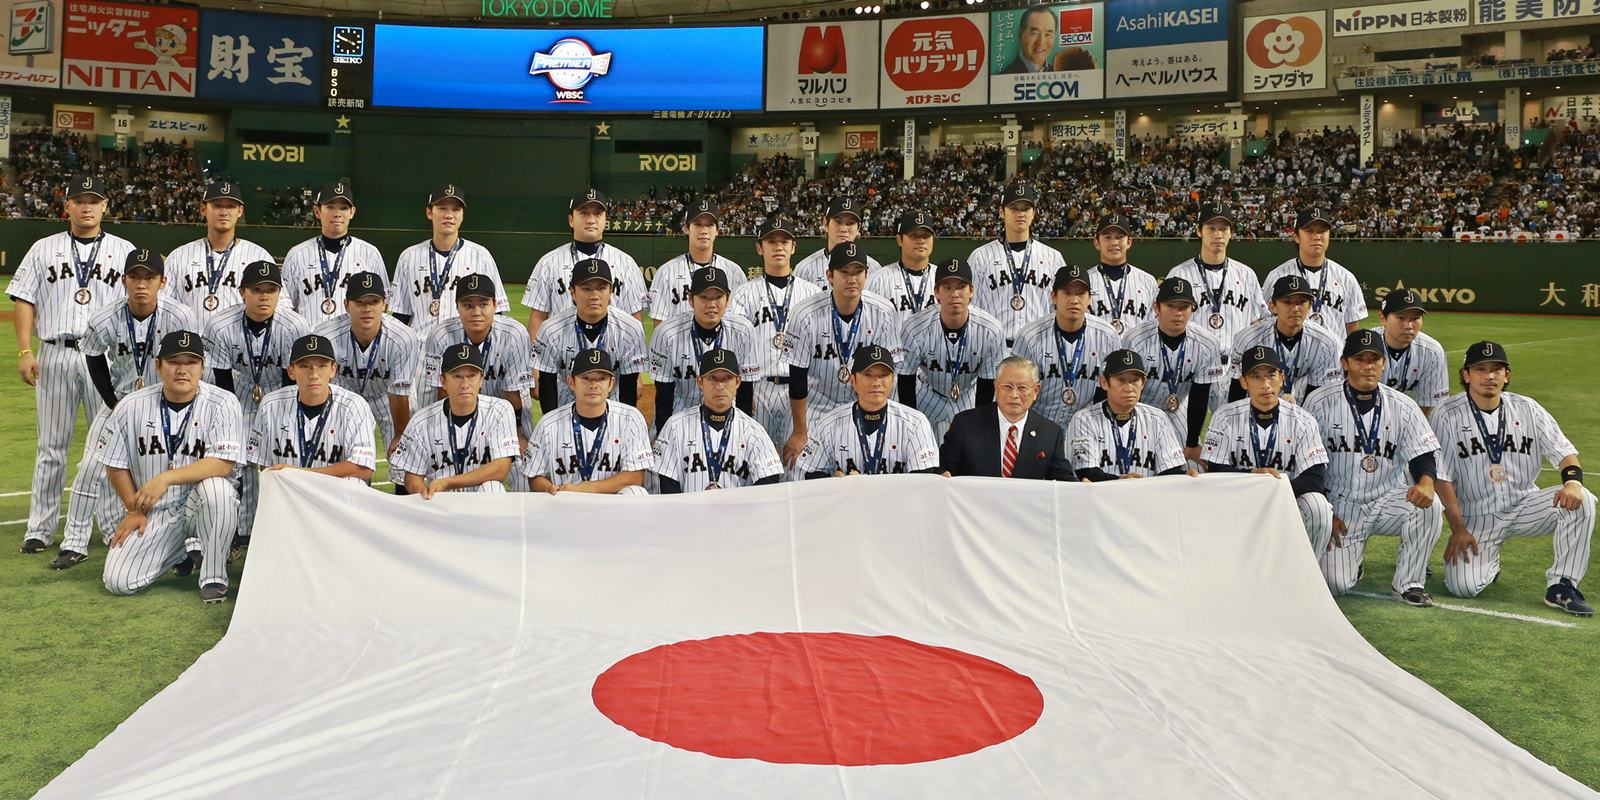 Japan National Baseball Team Photo with Bronze Medals - WBSC PREMIER12 2015